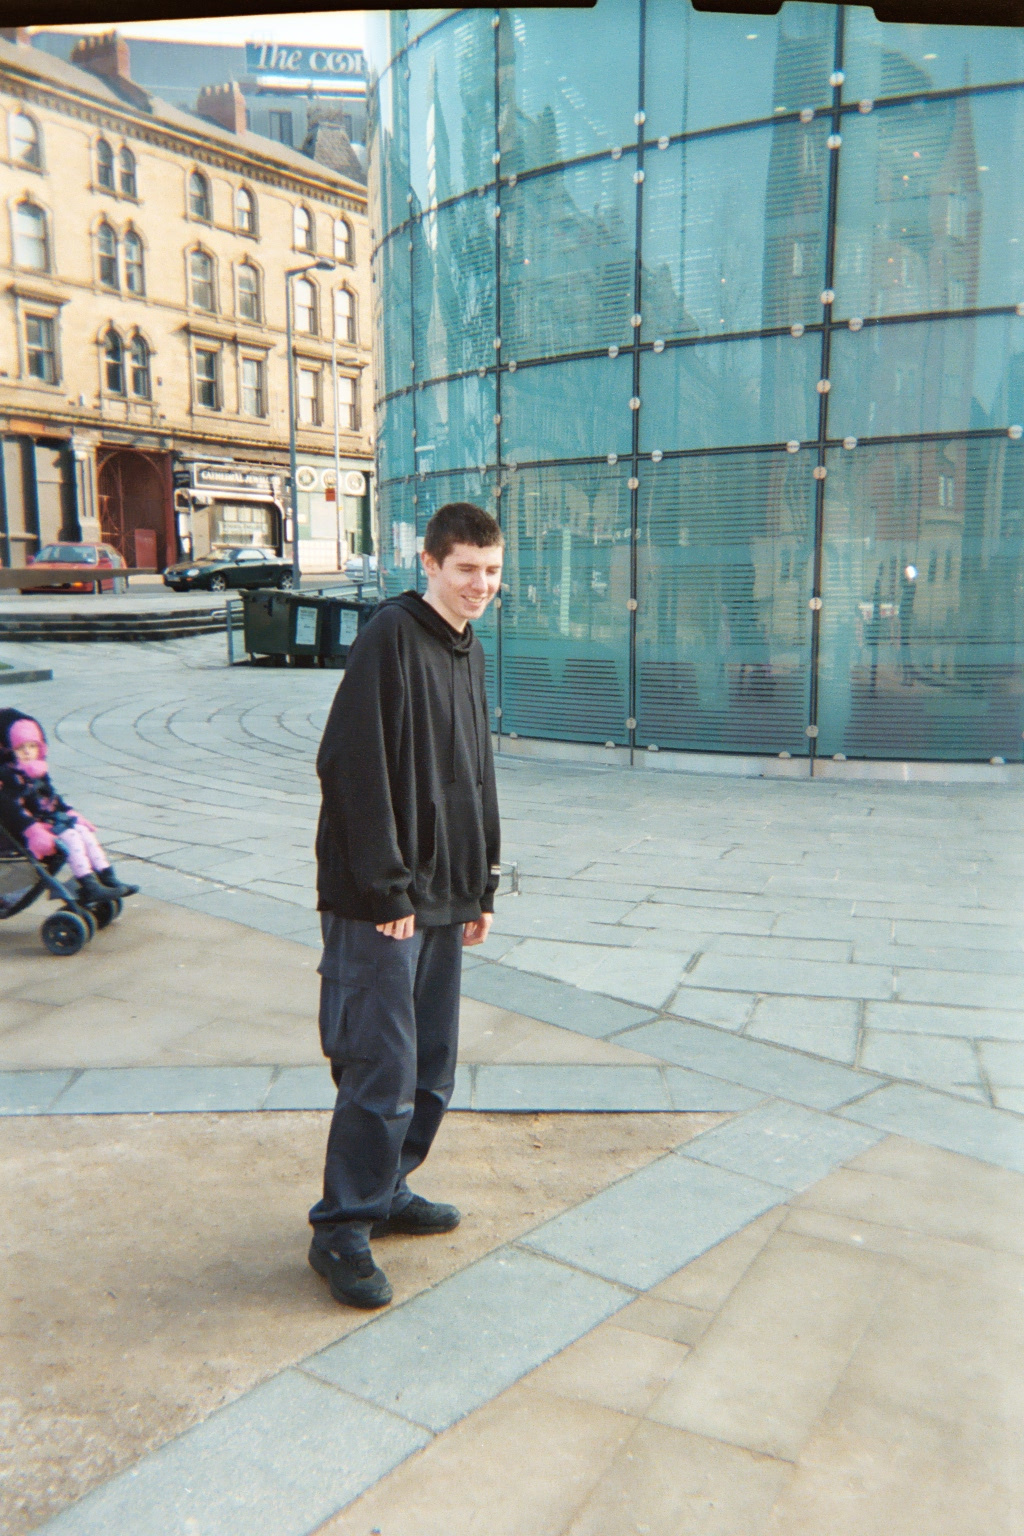 Me in Cathedral Gardens, Manchester